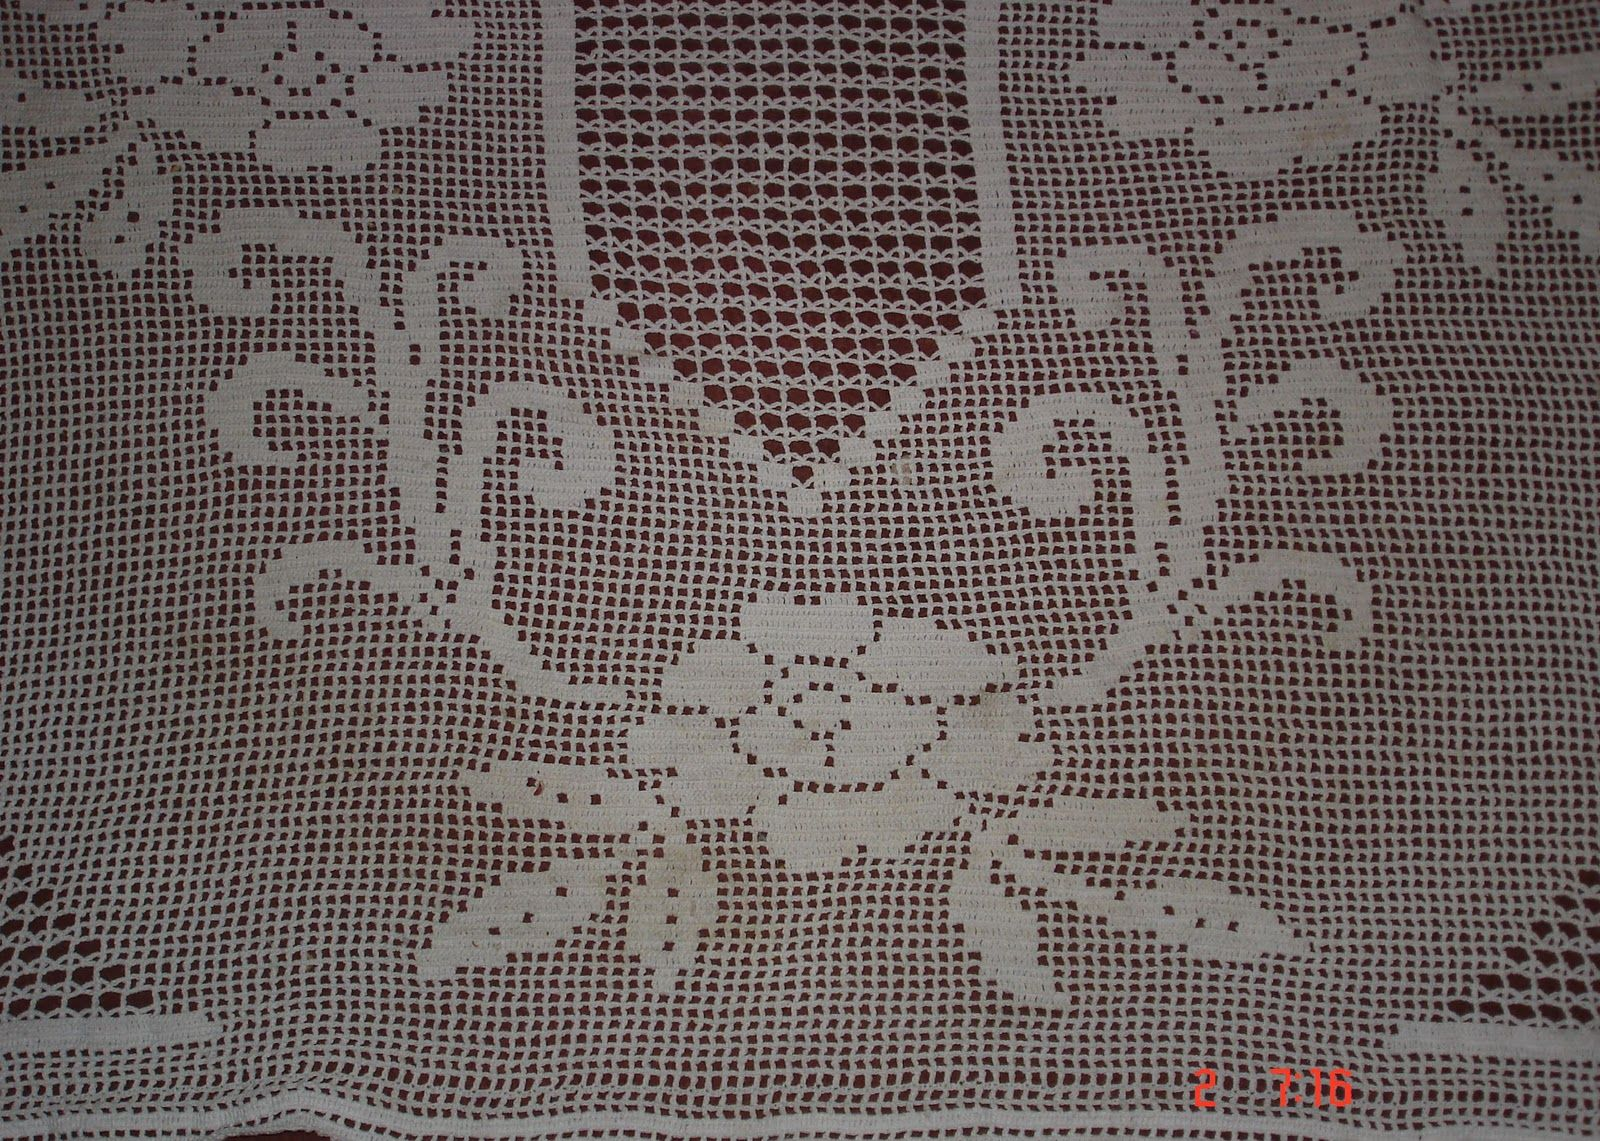 Crochet tablecloths free patterns filet crochet rose tablecloth crochet tablecloths free patterns filet crochet rose tablecloth pattern crochet and knitting patterns bankloansurffo Gallery